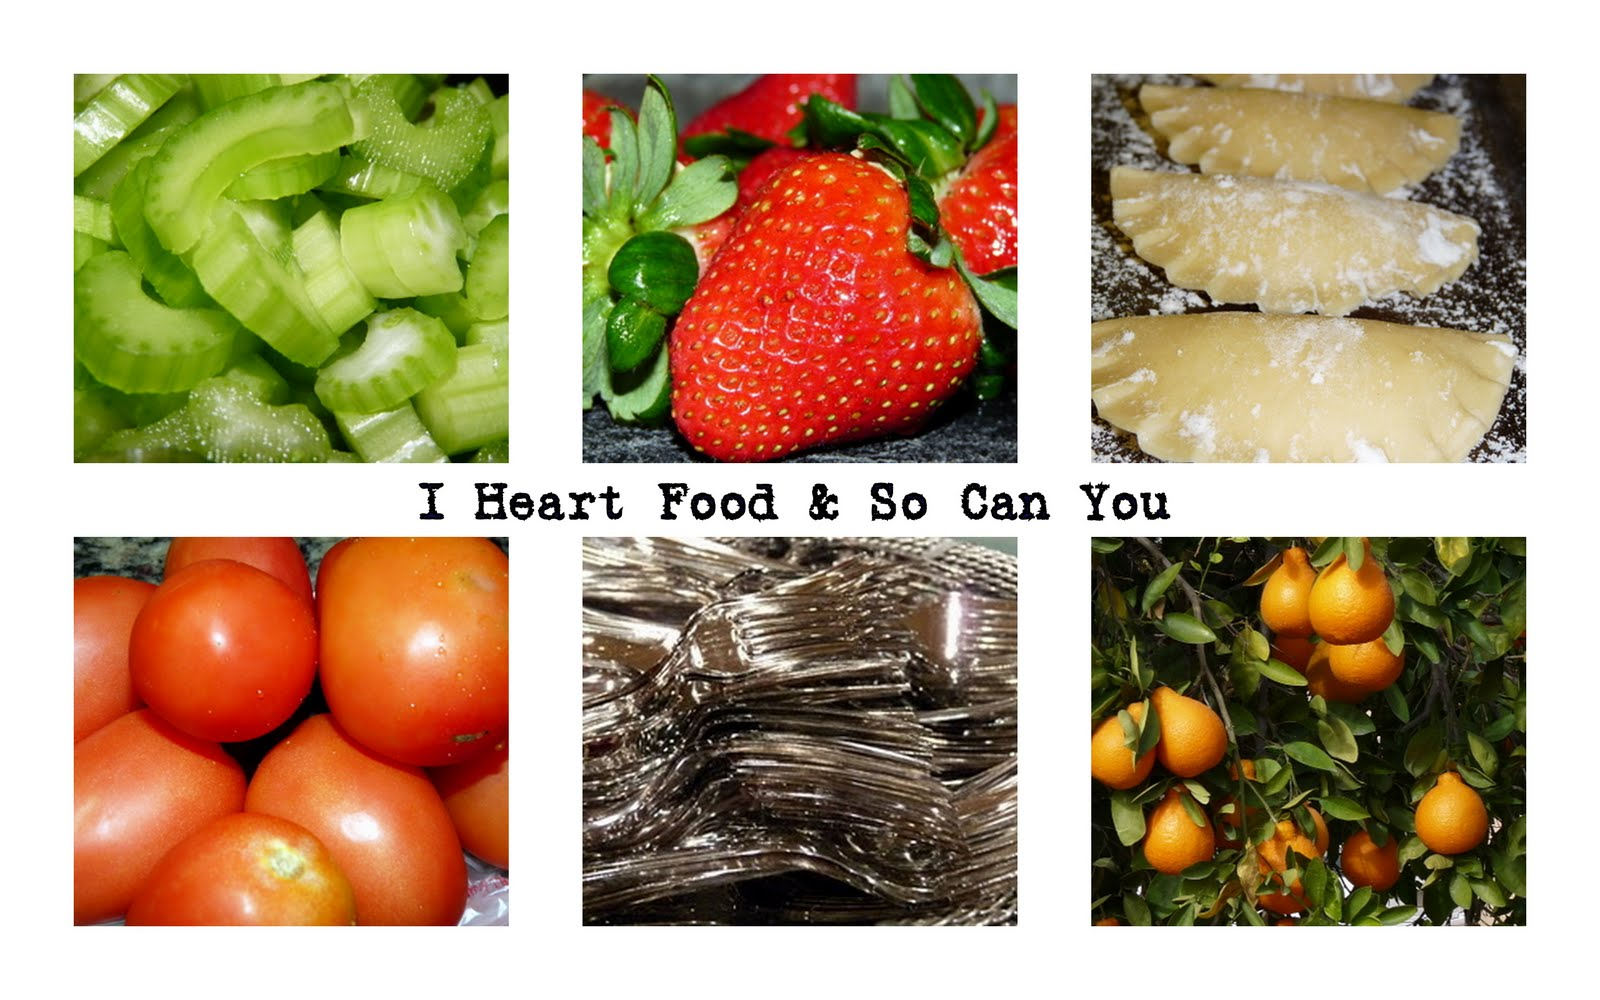 I Heart Food & So Can You